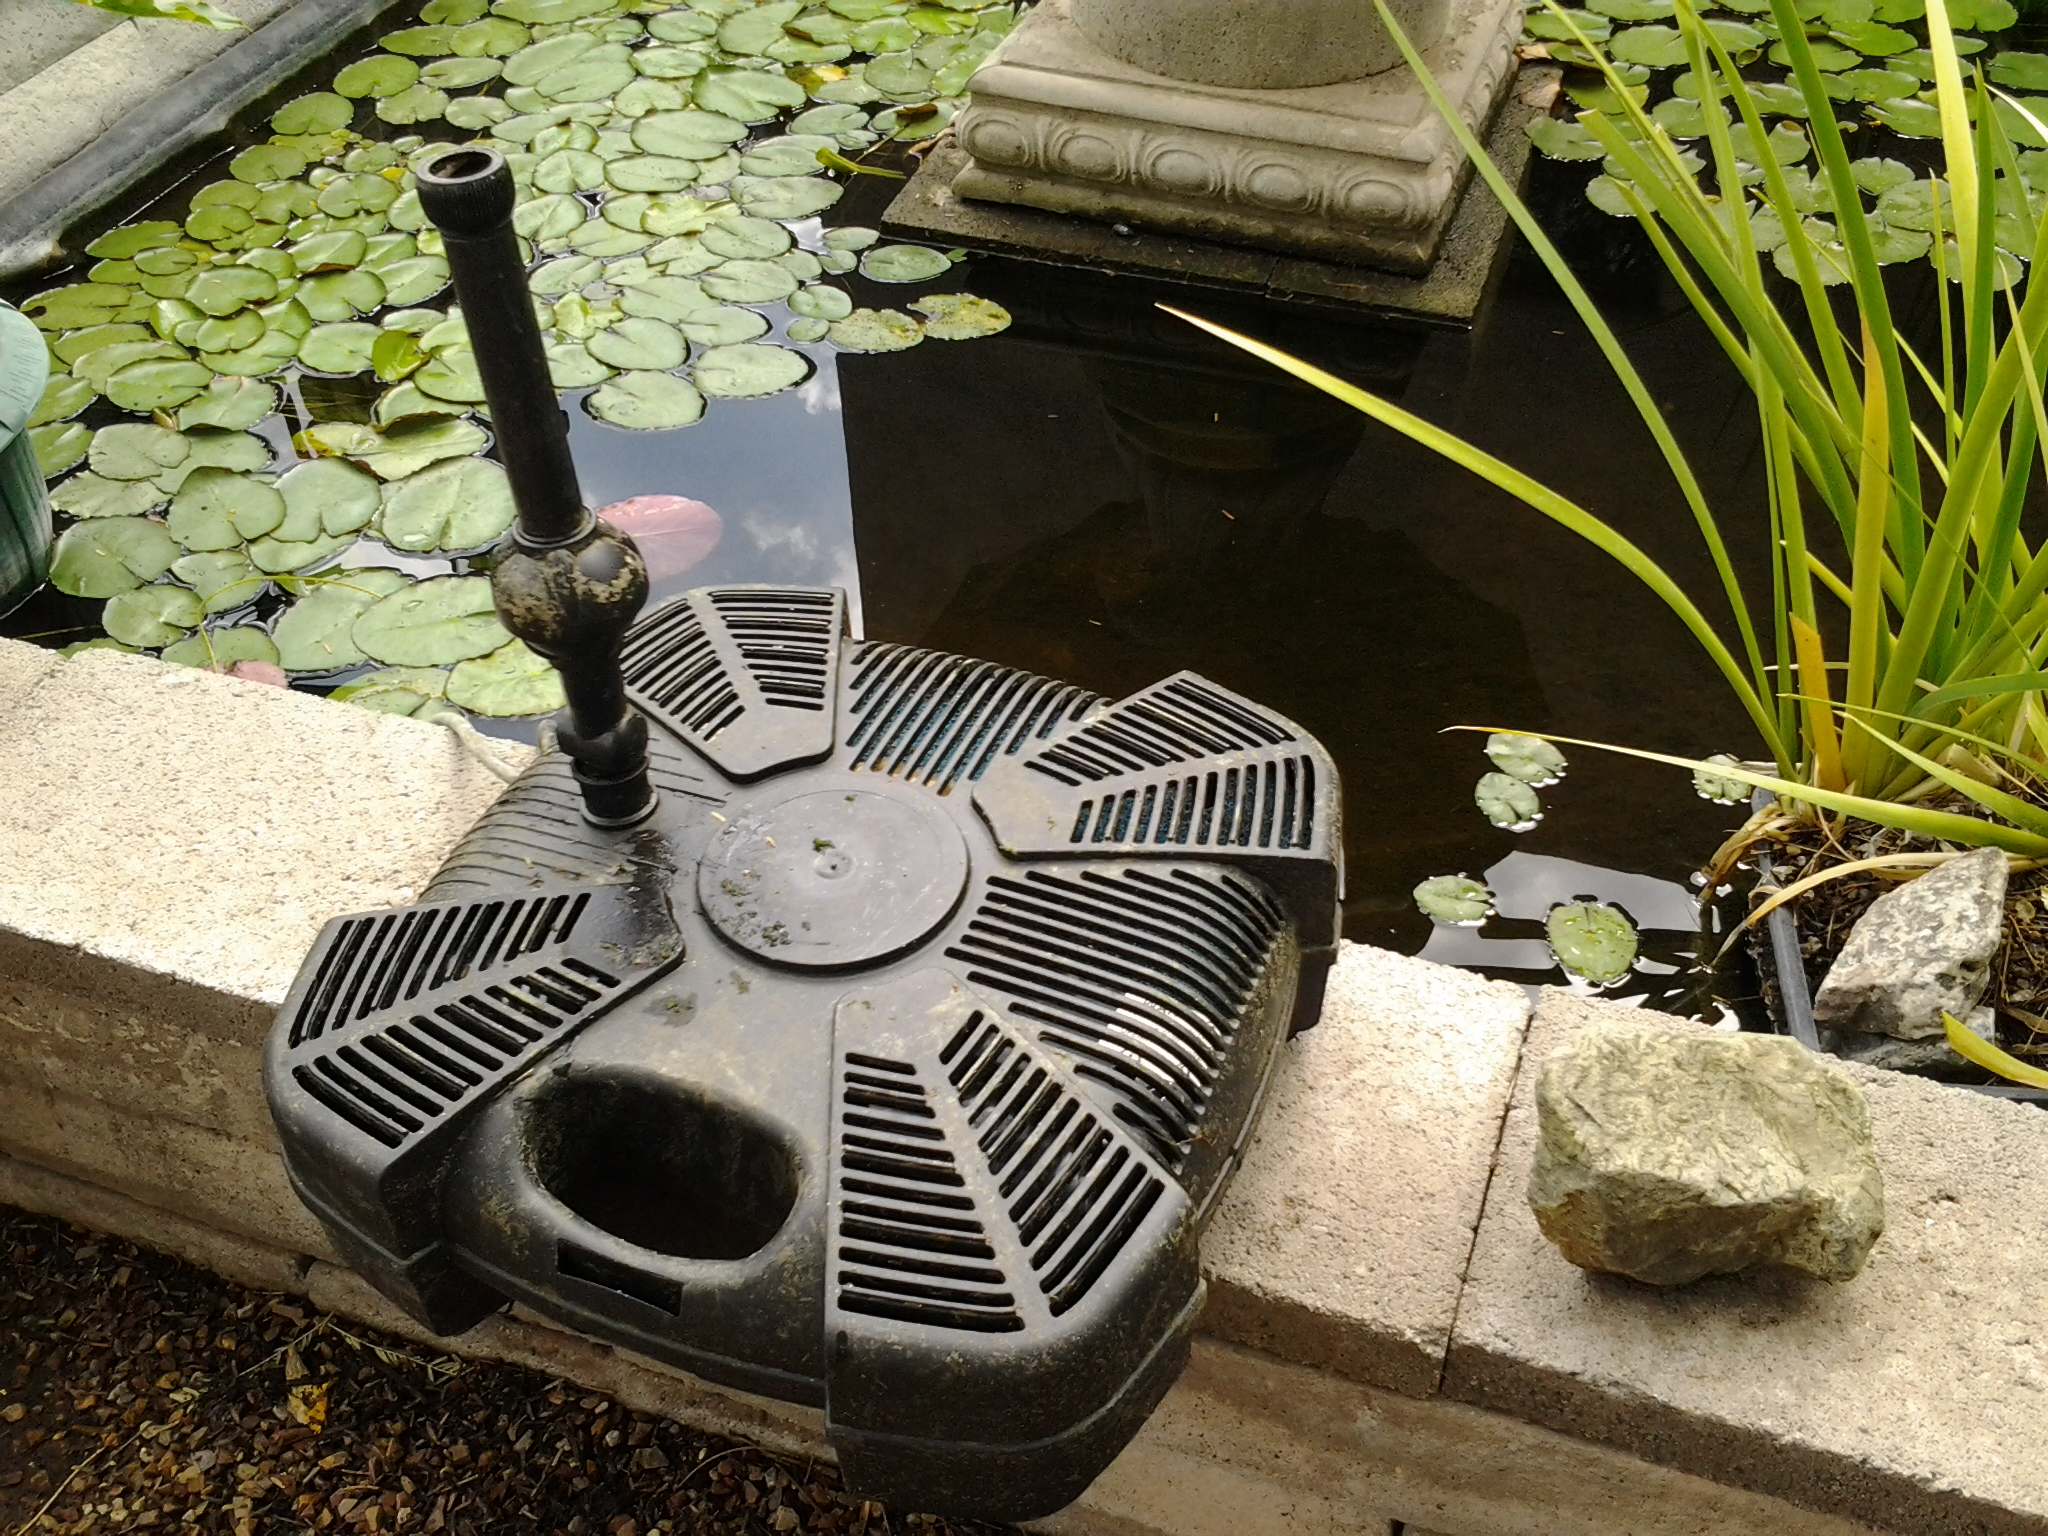 Best pond filter system all in one lifegard pump with uv for What is the best koi pond filter system